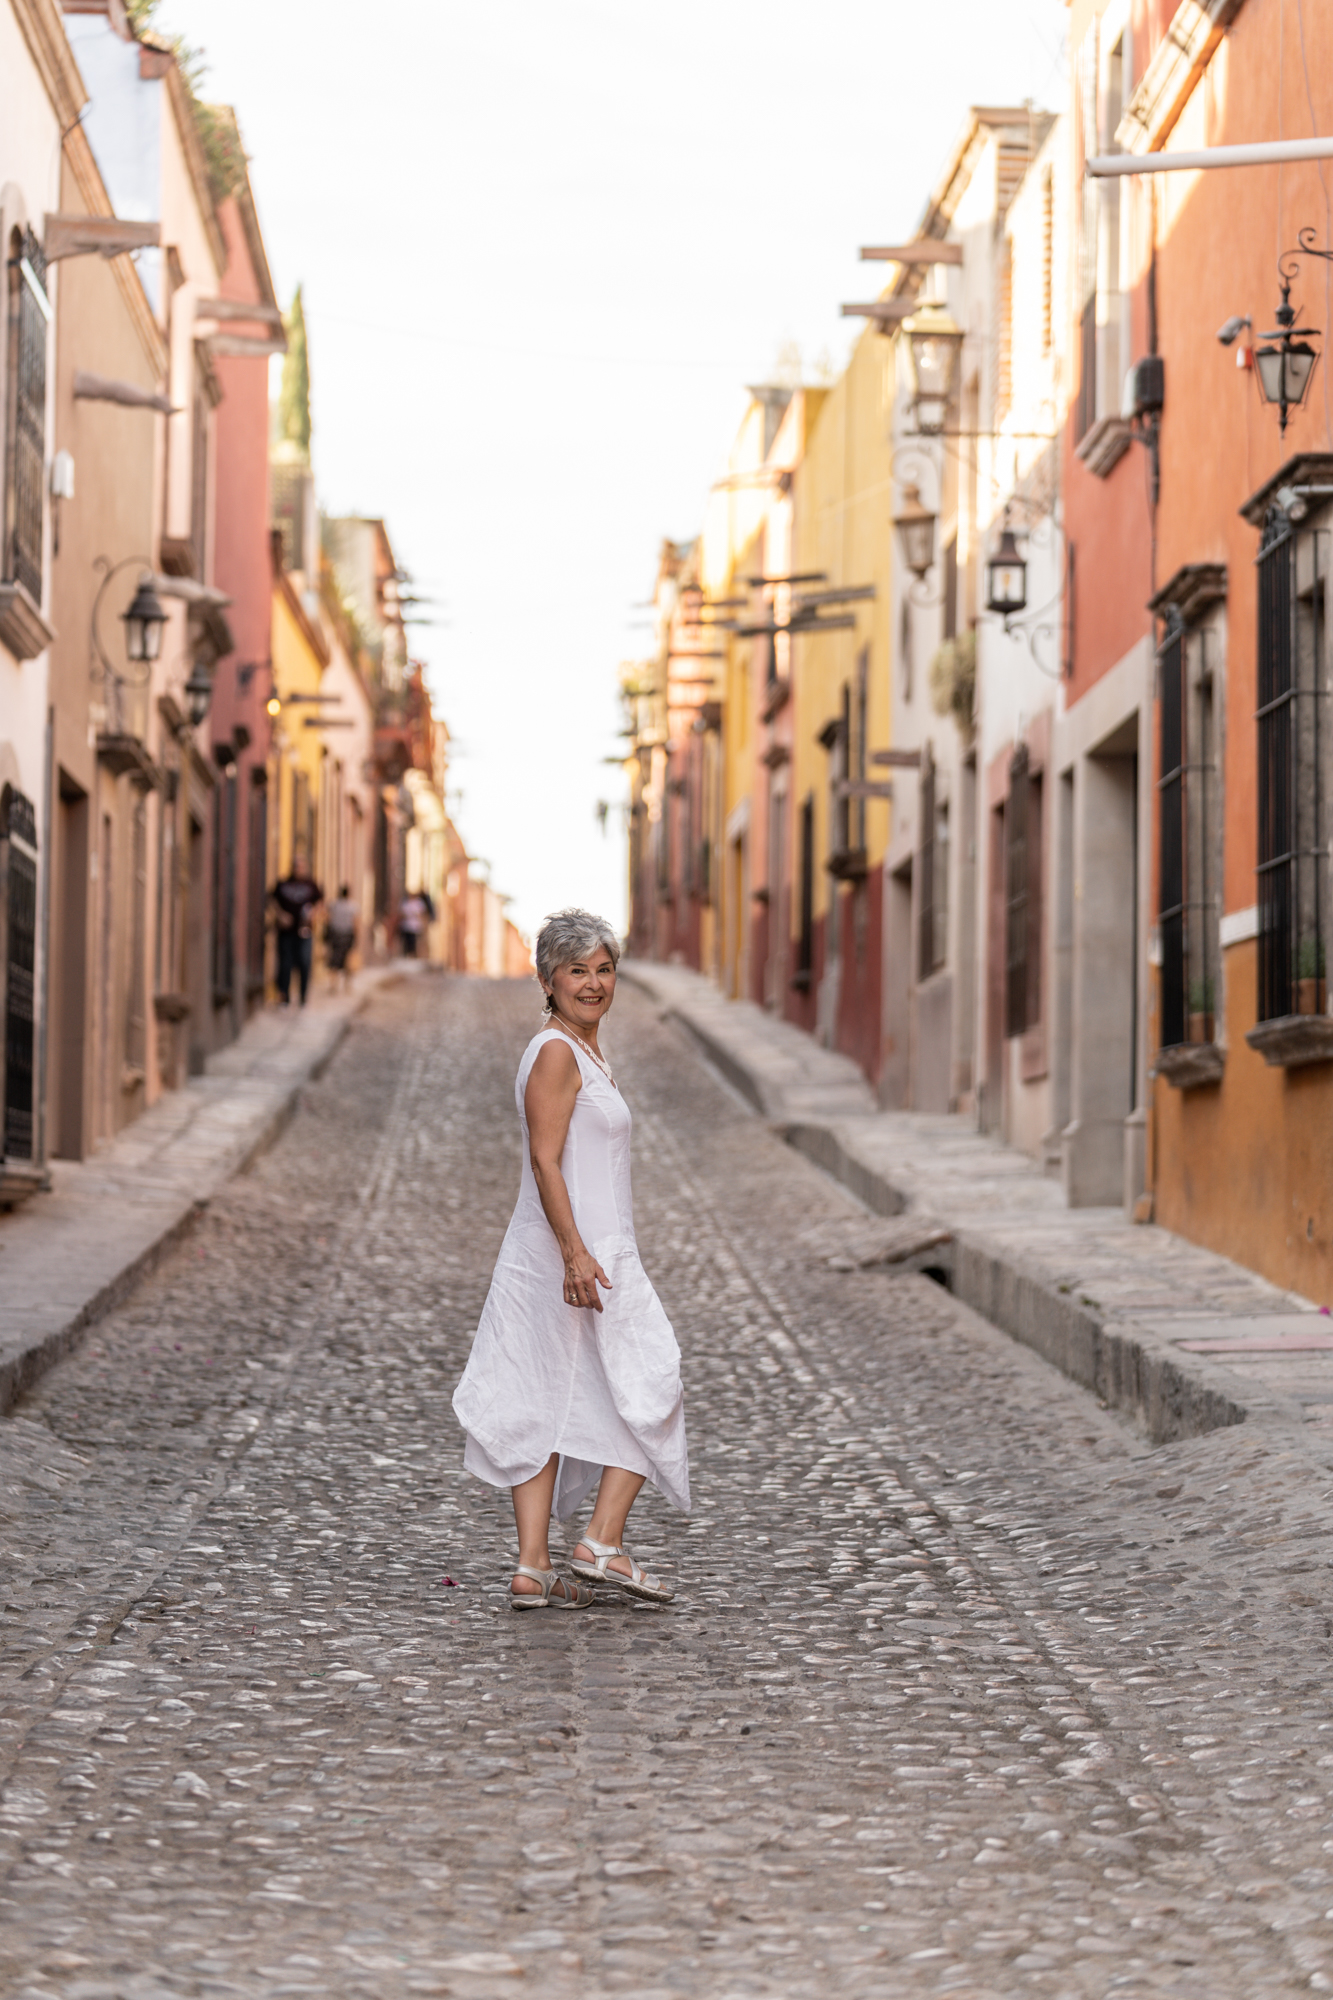 Photoshoot session in San Miguel de Allende with Suzanne and Leo-28.jpg